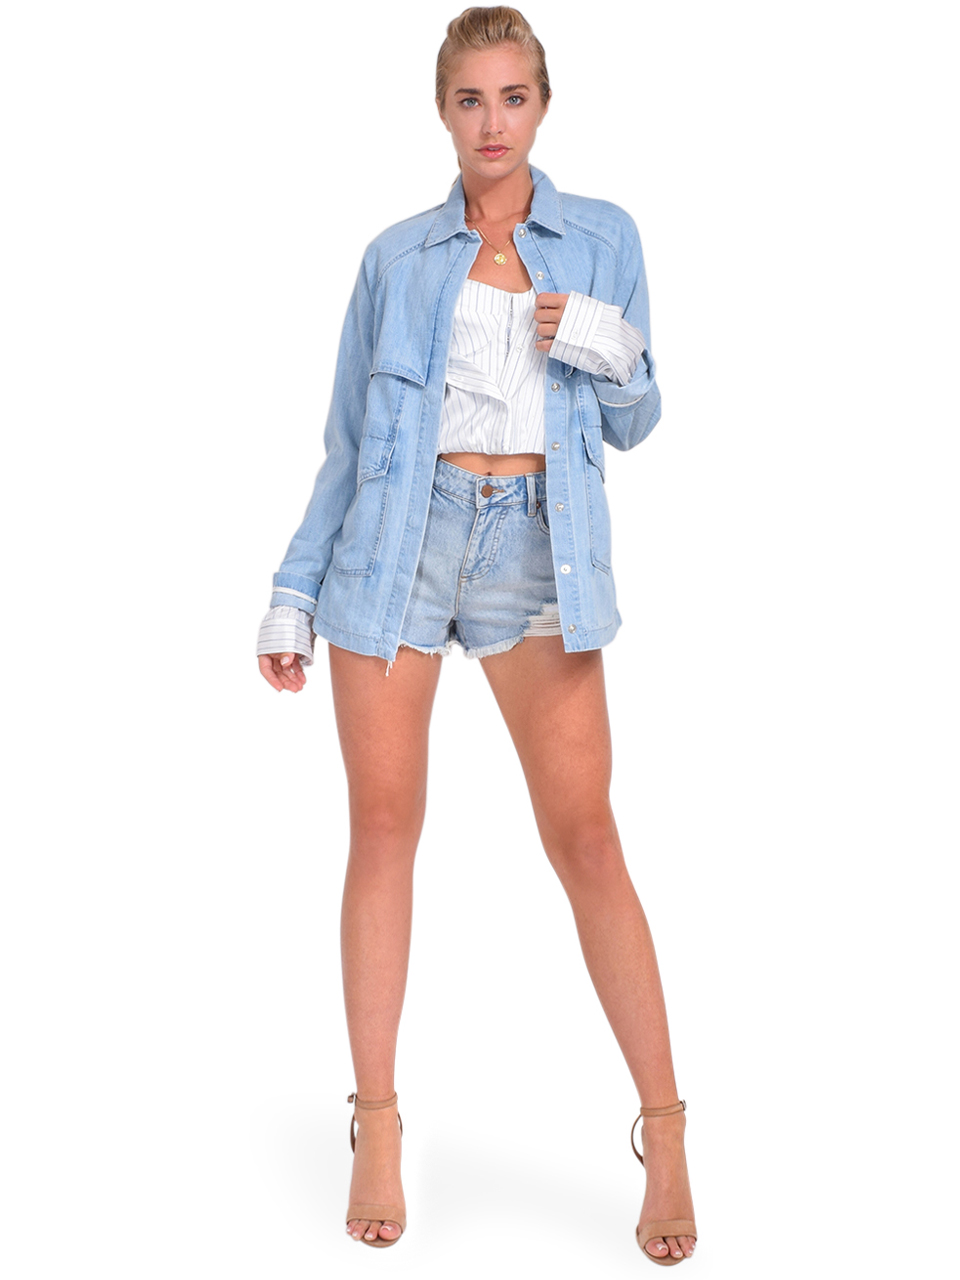 RTA Louna Jacket in Paradise Blue Full Outfit